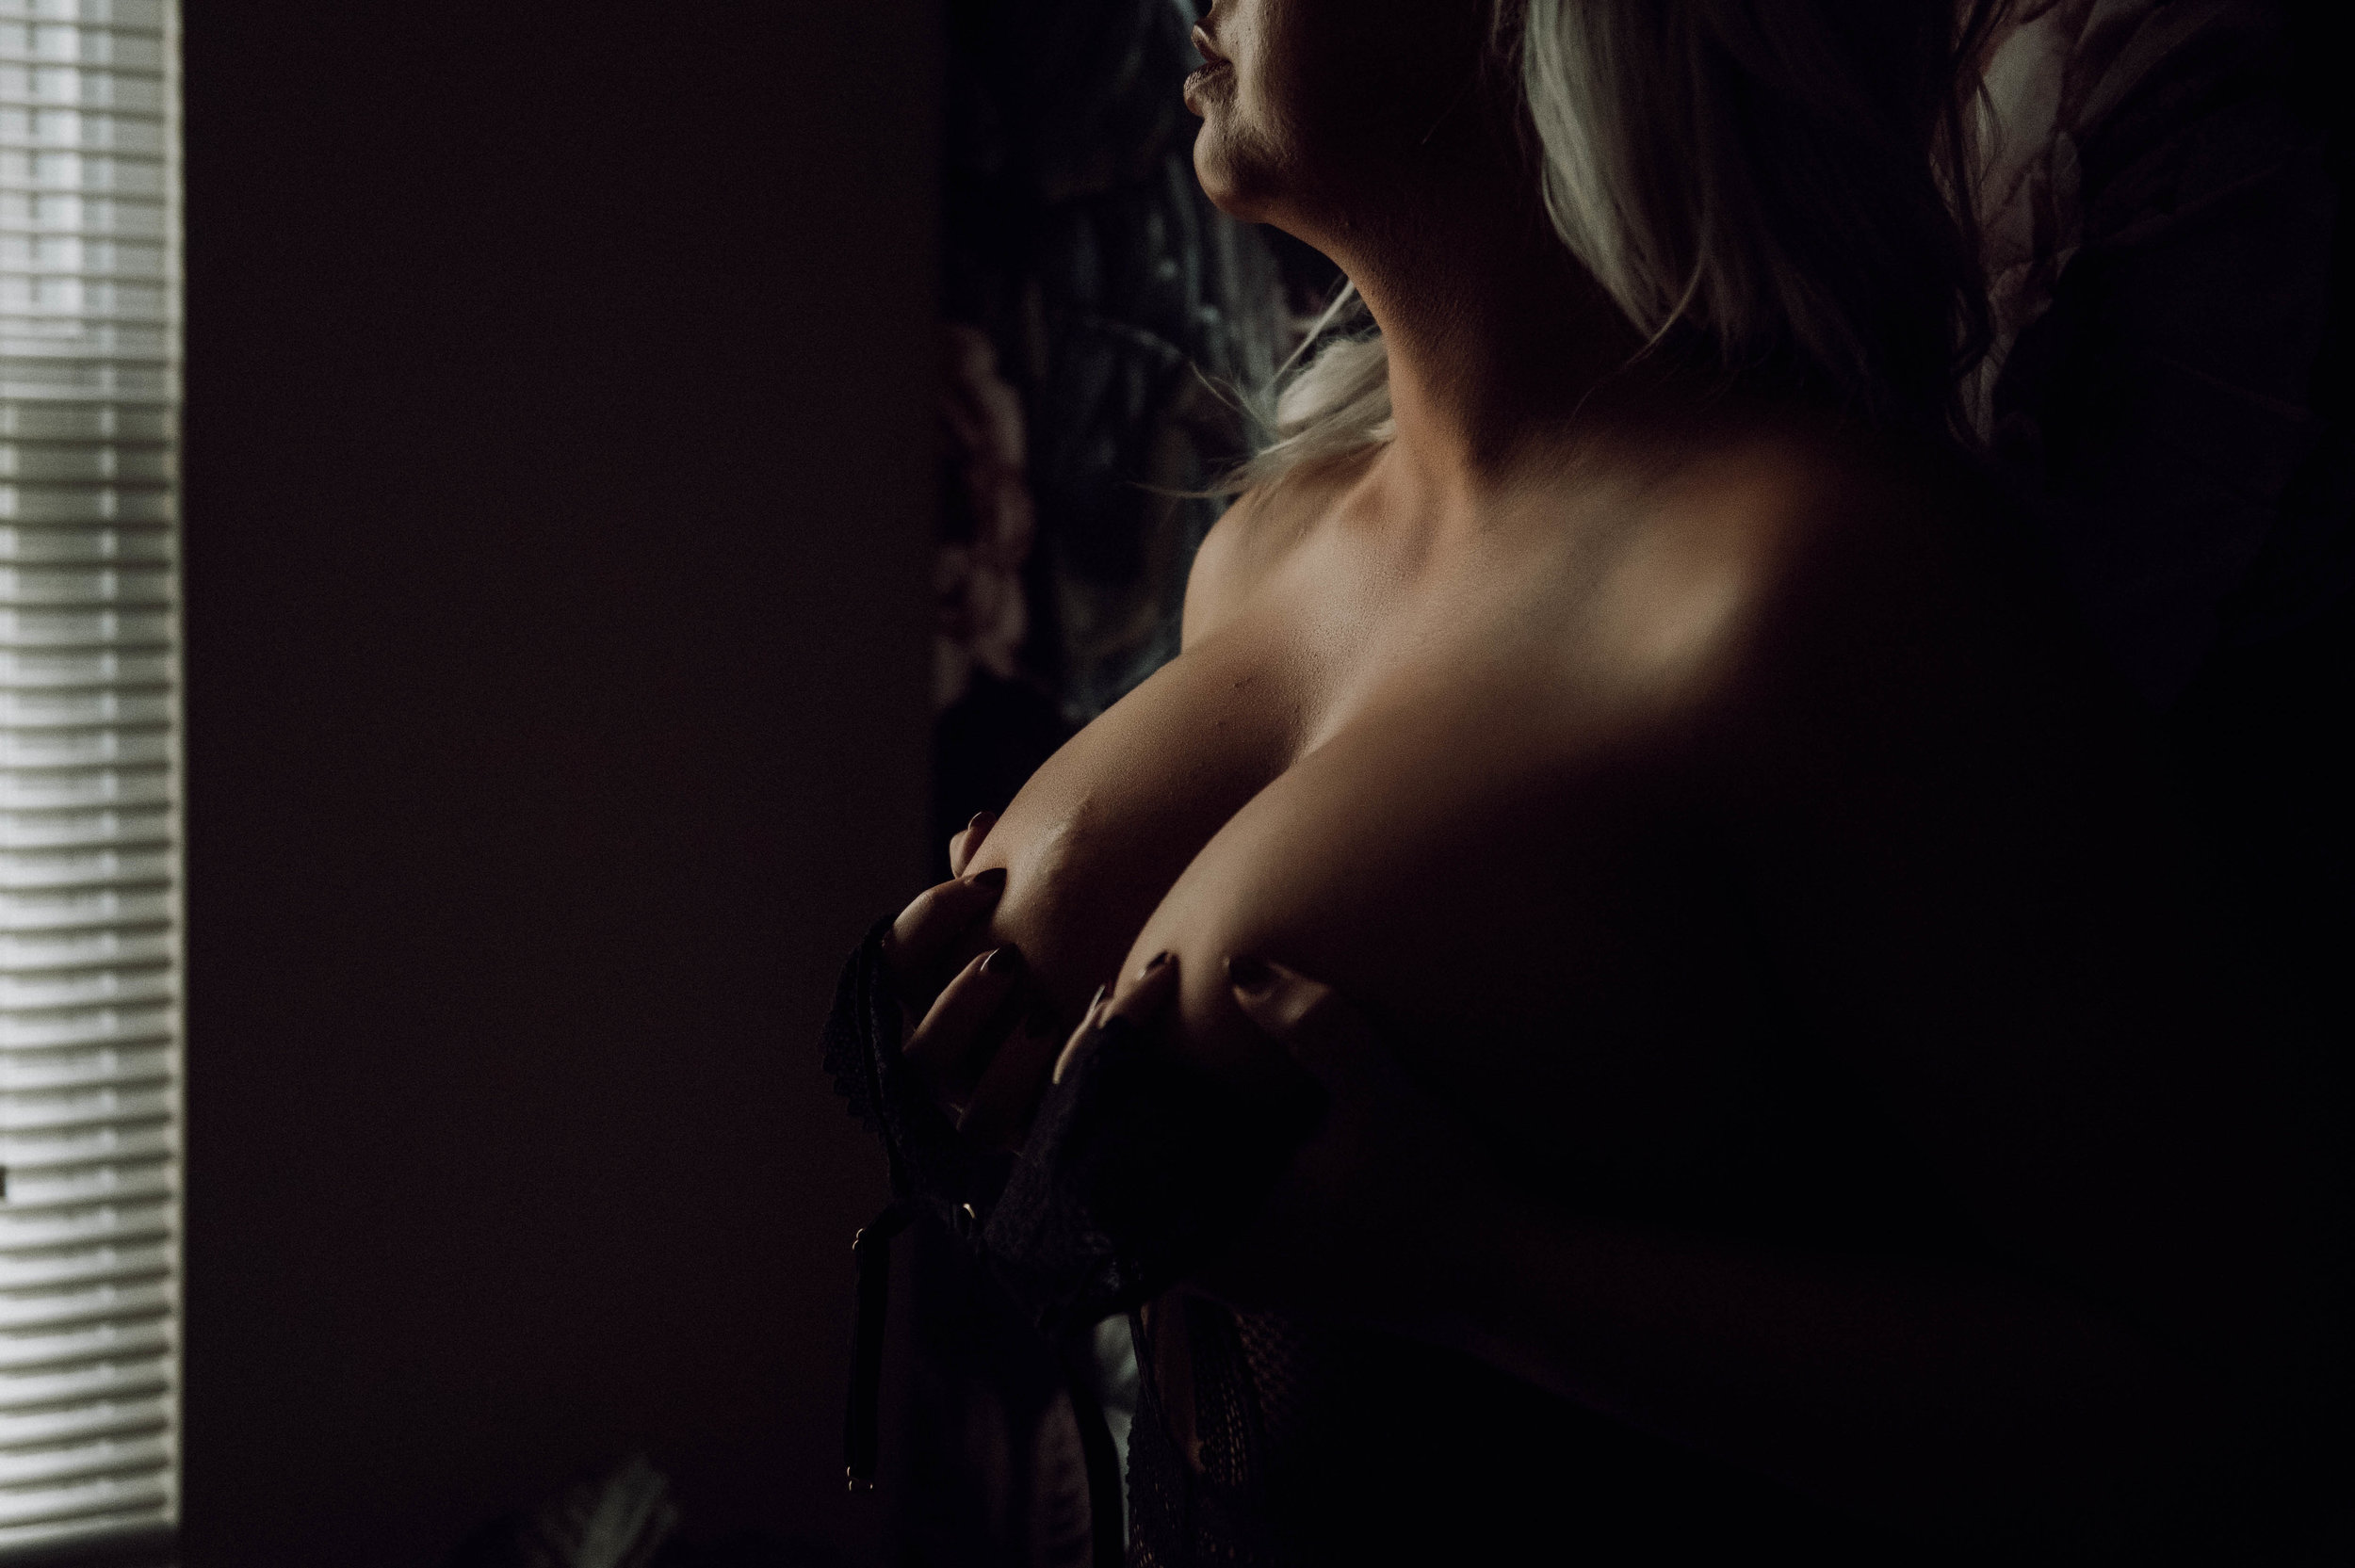 Nude intimate photography of blonde with silhouette boudoir photography New York City